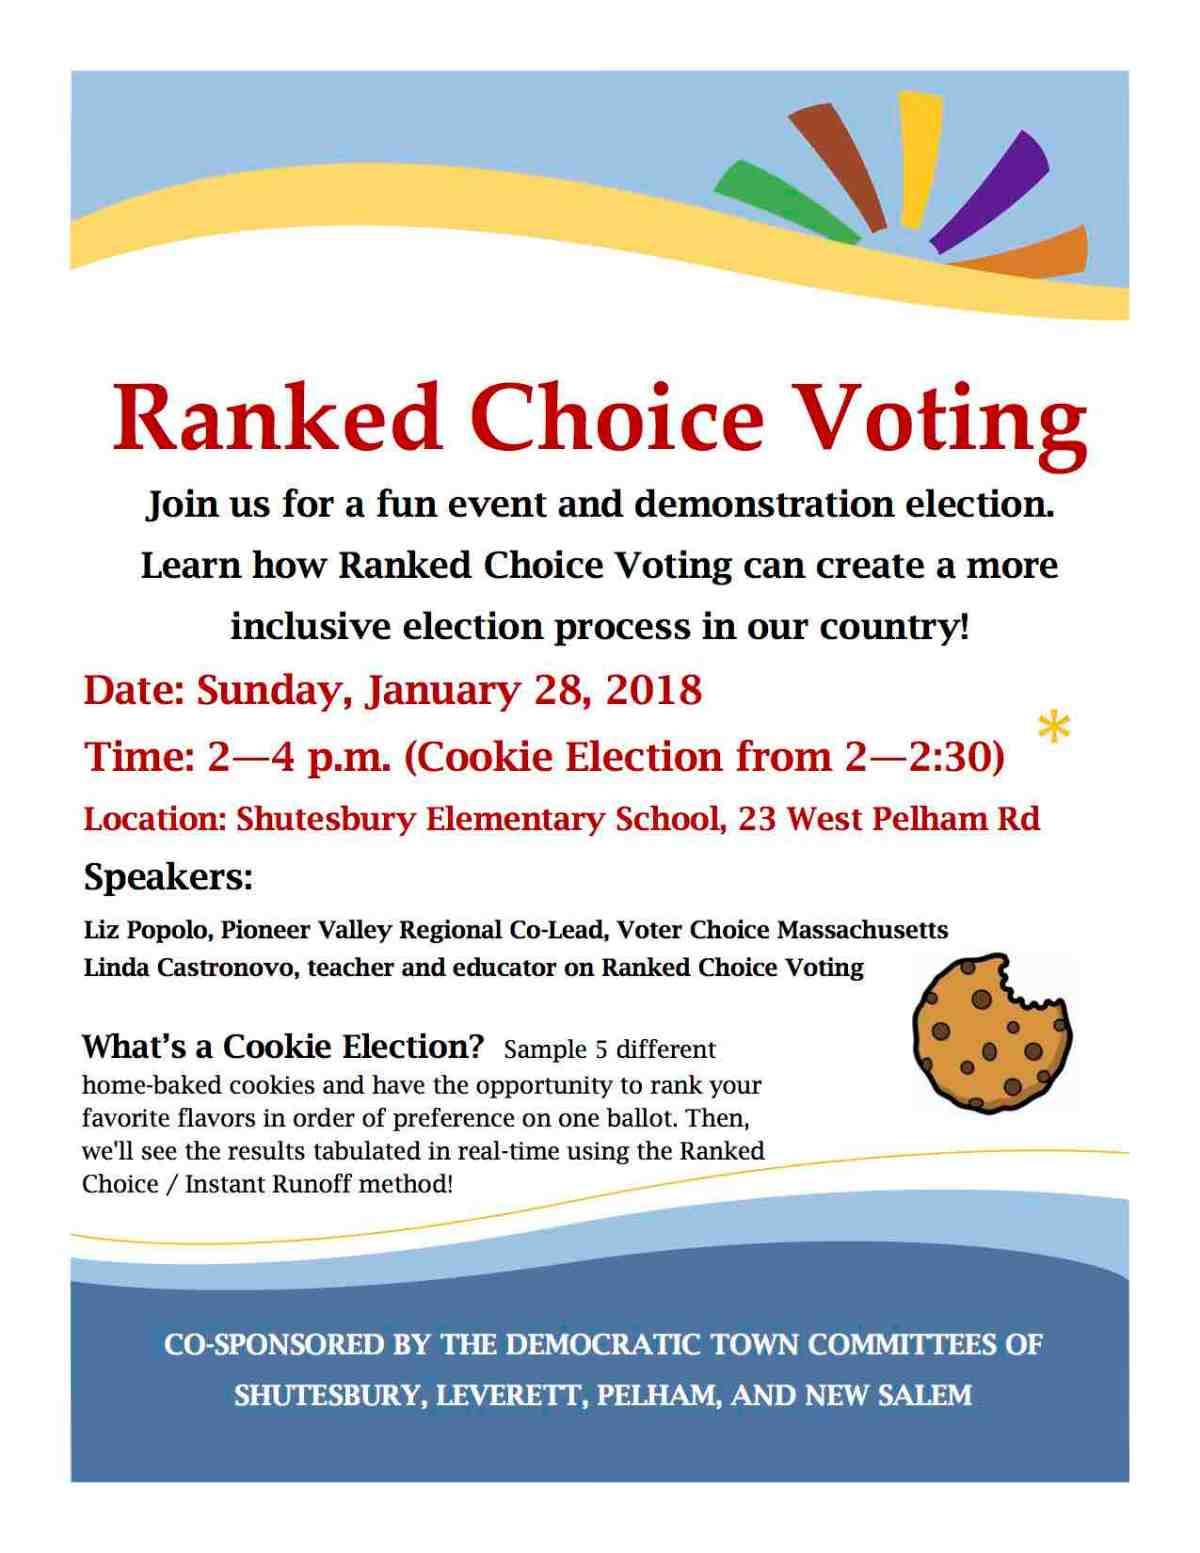 'Cookie Election' to Demonstrate Ranked Choice Voting